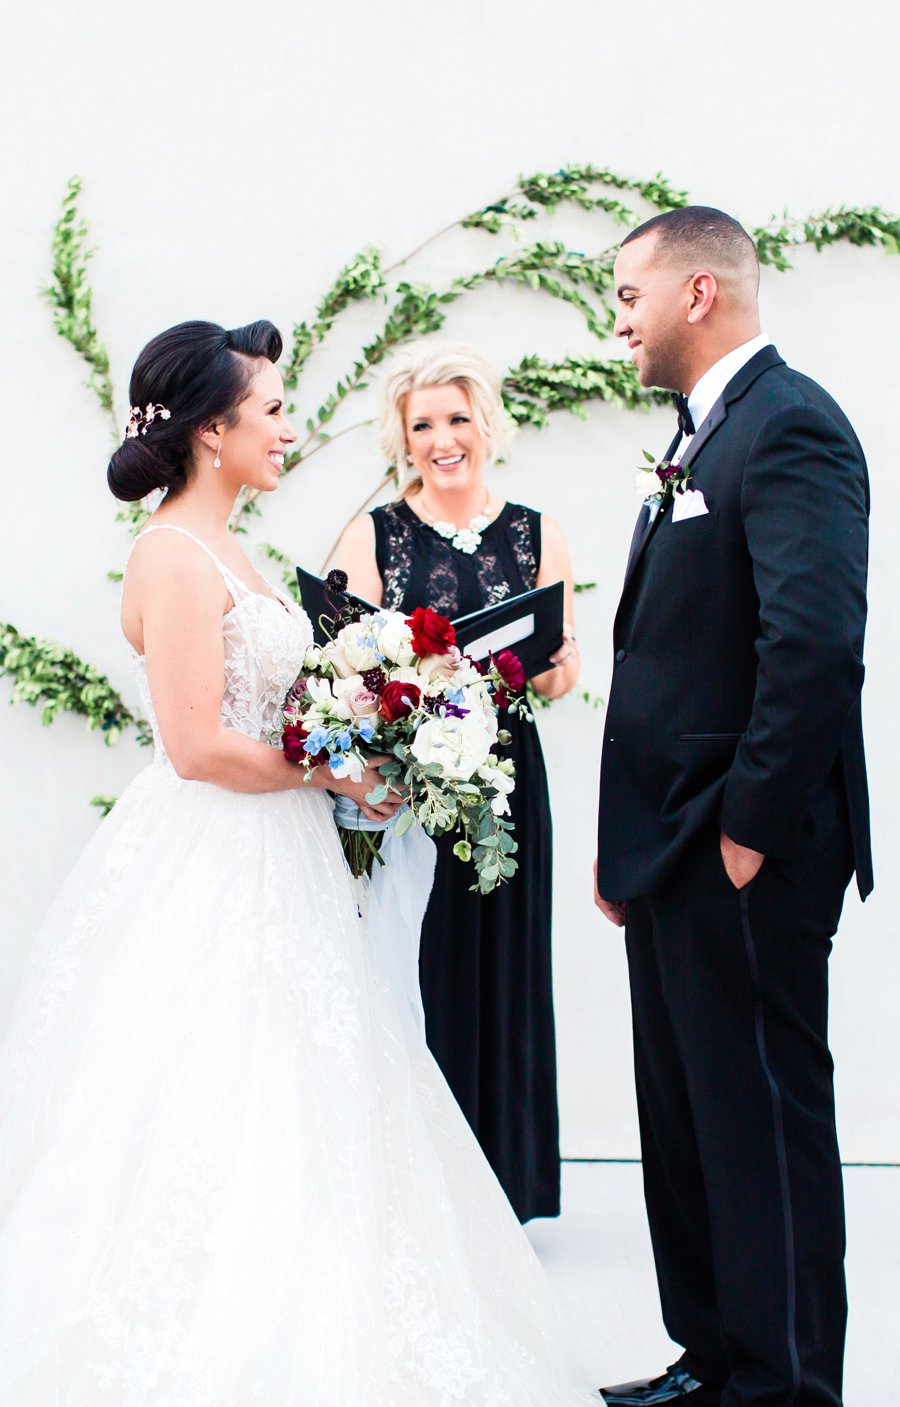 Blue, Black, & White Modern Elegant Wedding Ideas via TheELD.com